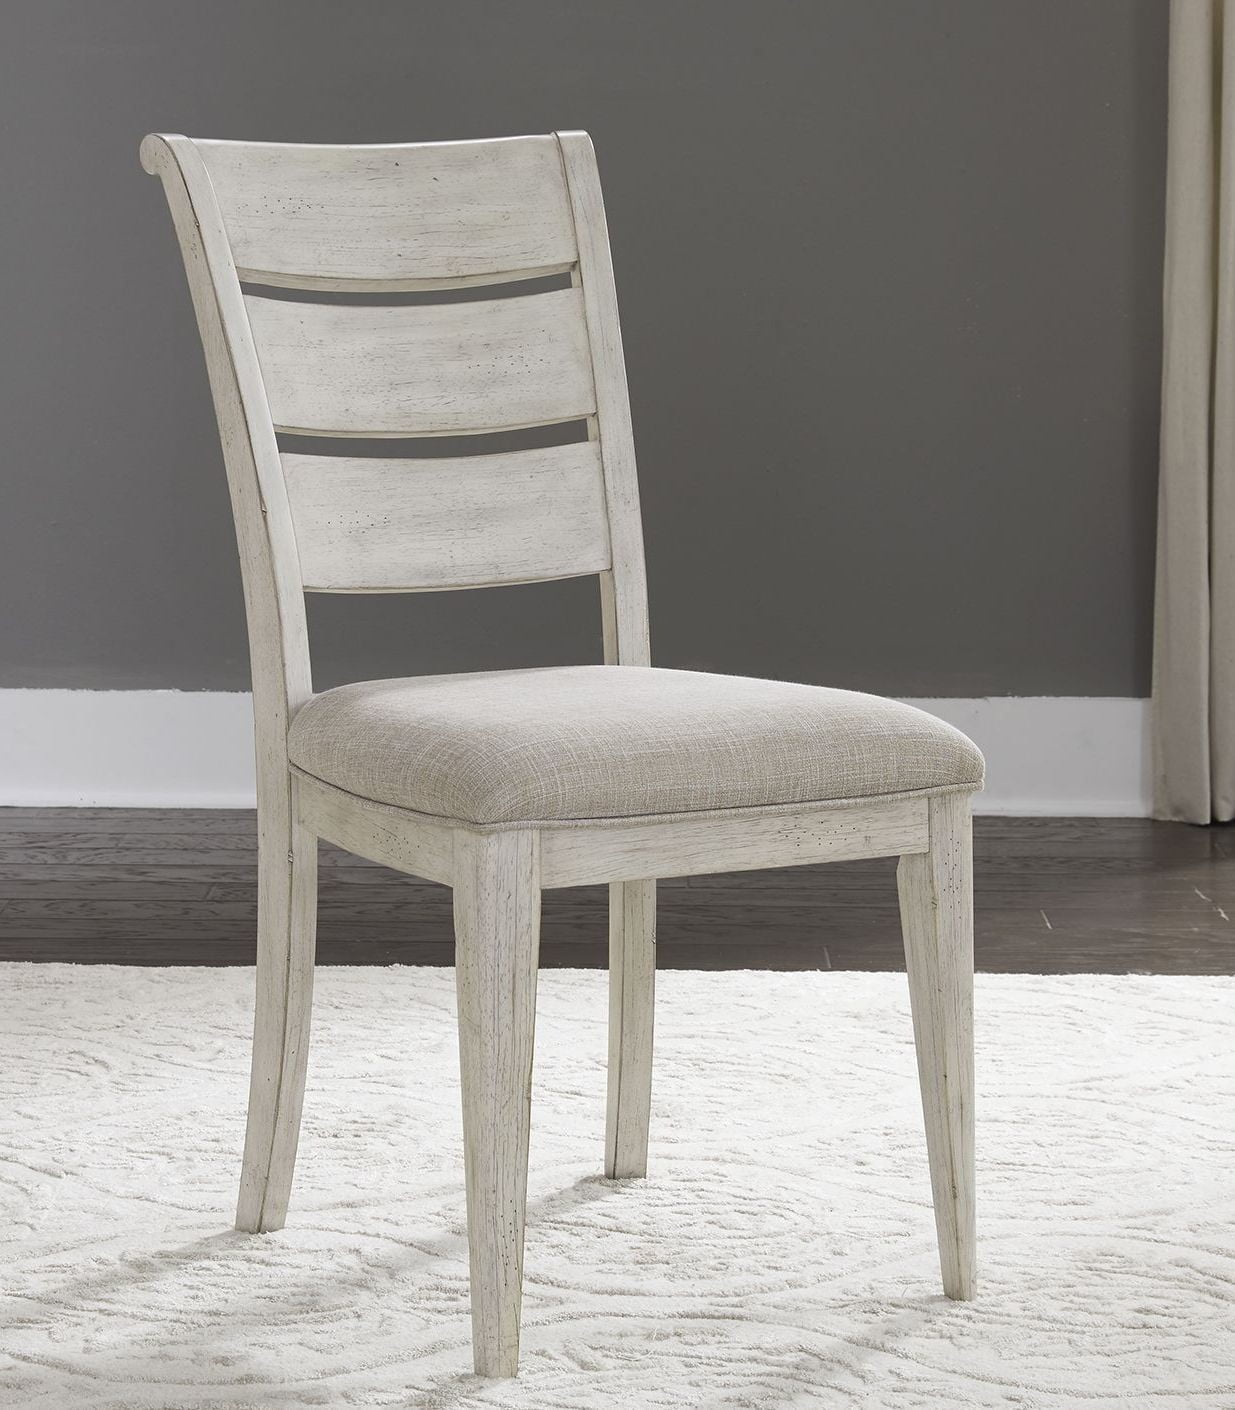 White Upholstered Chair Farmhouse Reimagined Antique White Upholstered Side Chair